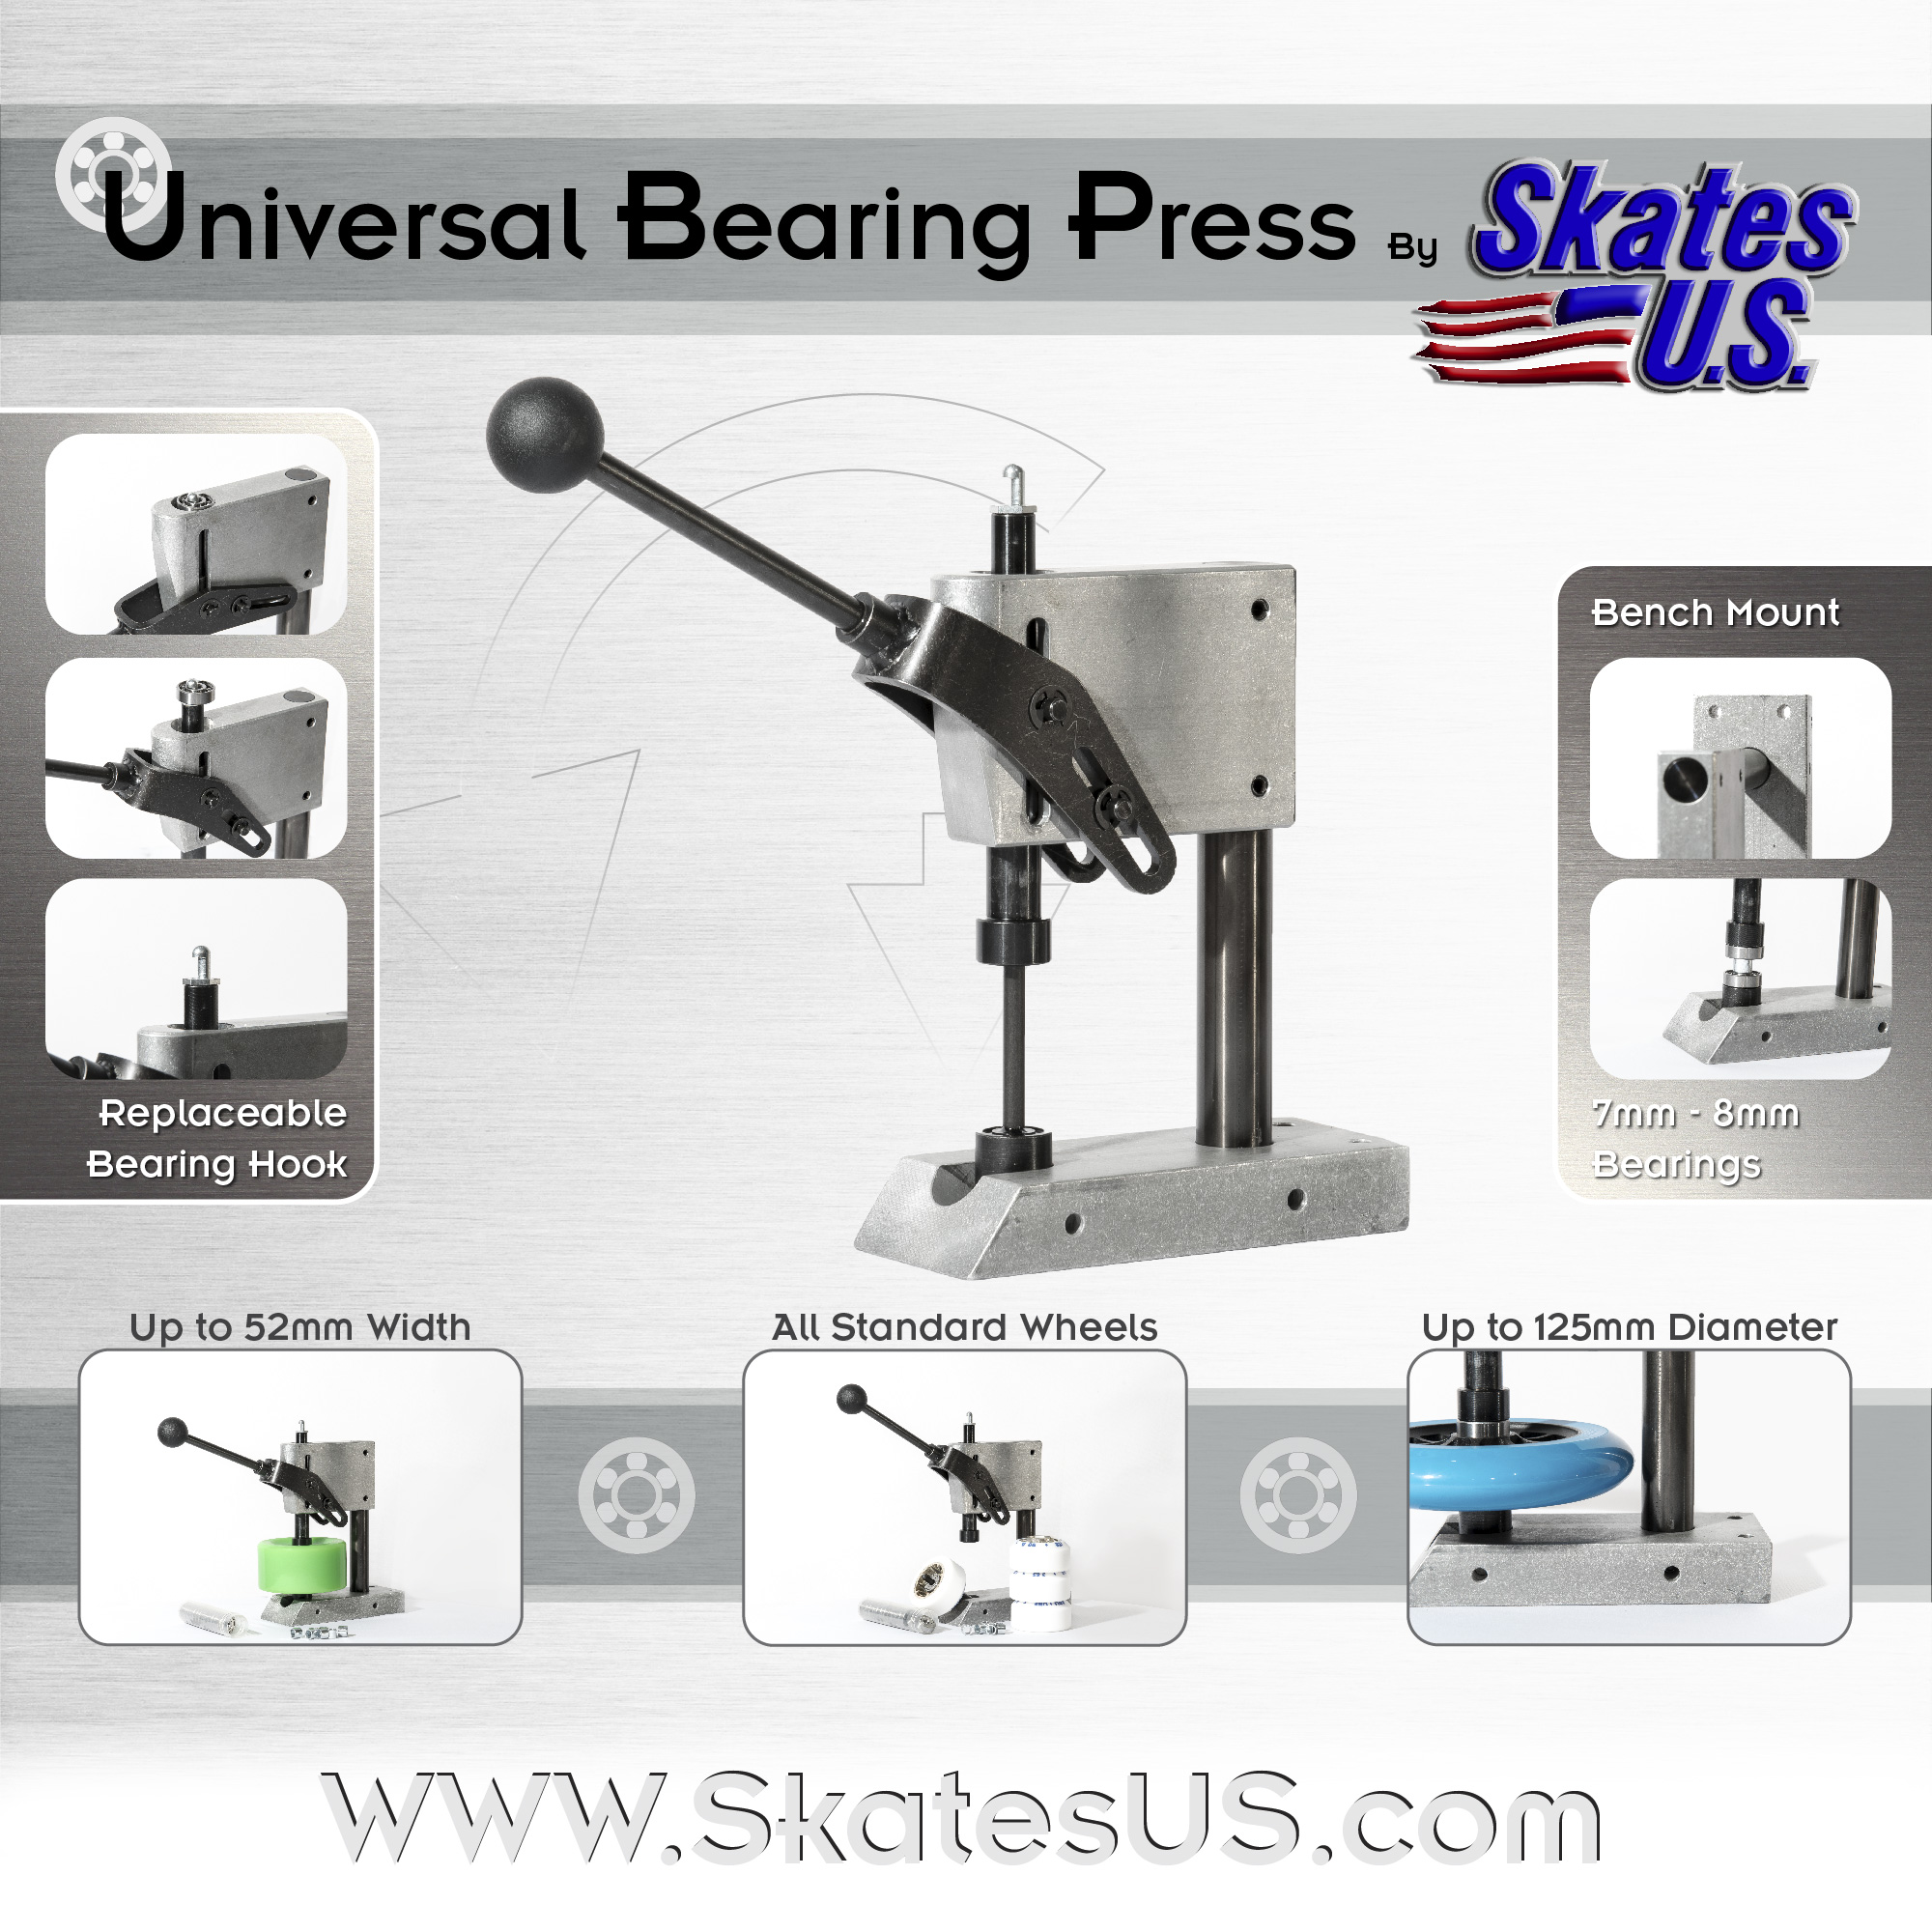 Tavola-disegno-1@2000x-80 Universal Bearing Press Precision Heavy Duty